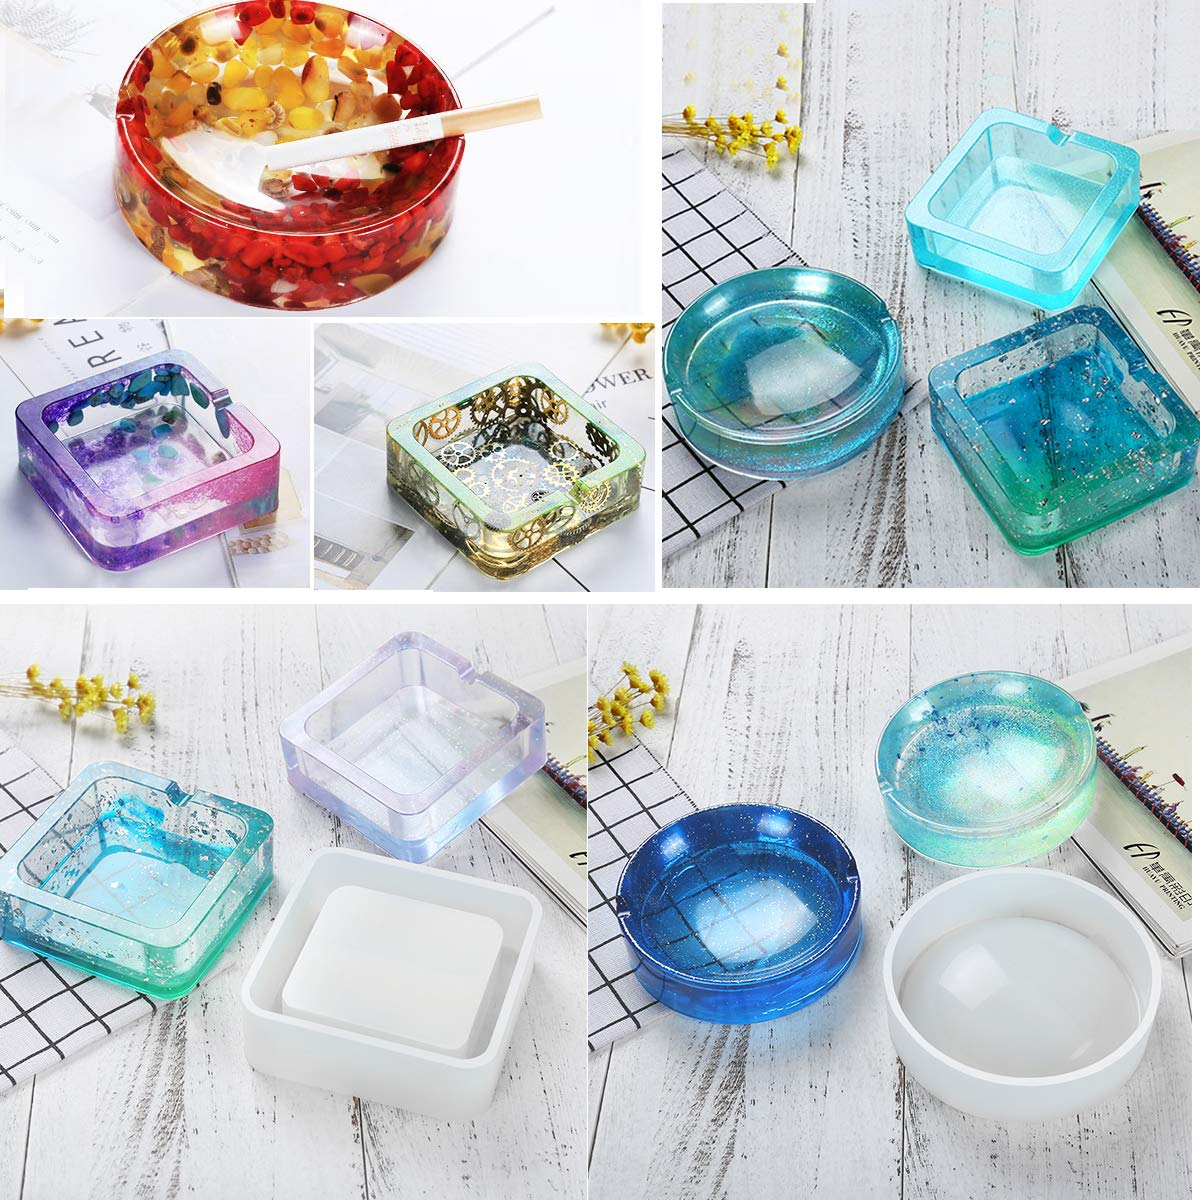 Concrete Hexagon and Square Mold for Resin with Measurement Cup and 10 Wood Sticks Epoxy Casting Molds Including Round Home Decoration Vindar 5 Pack DIY Silicone Coaster Resin Molds Cement